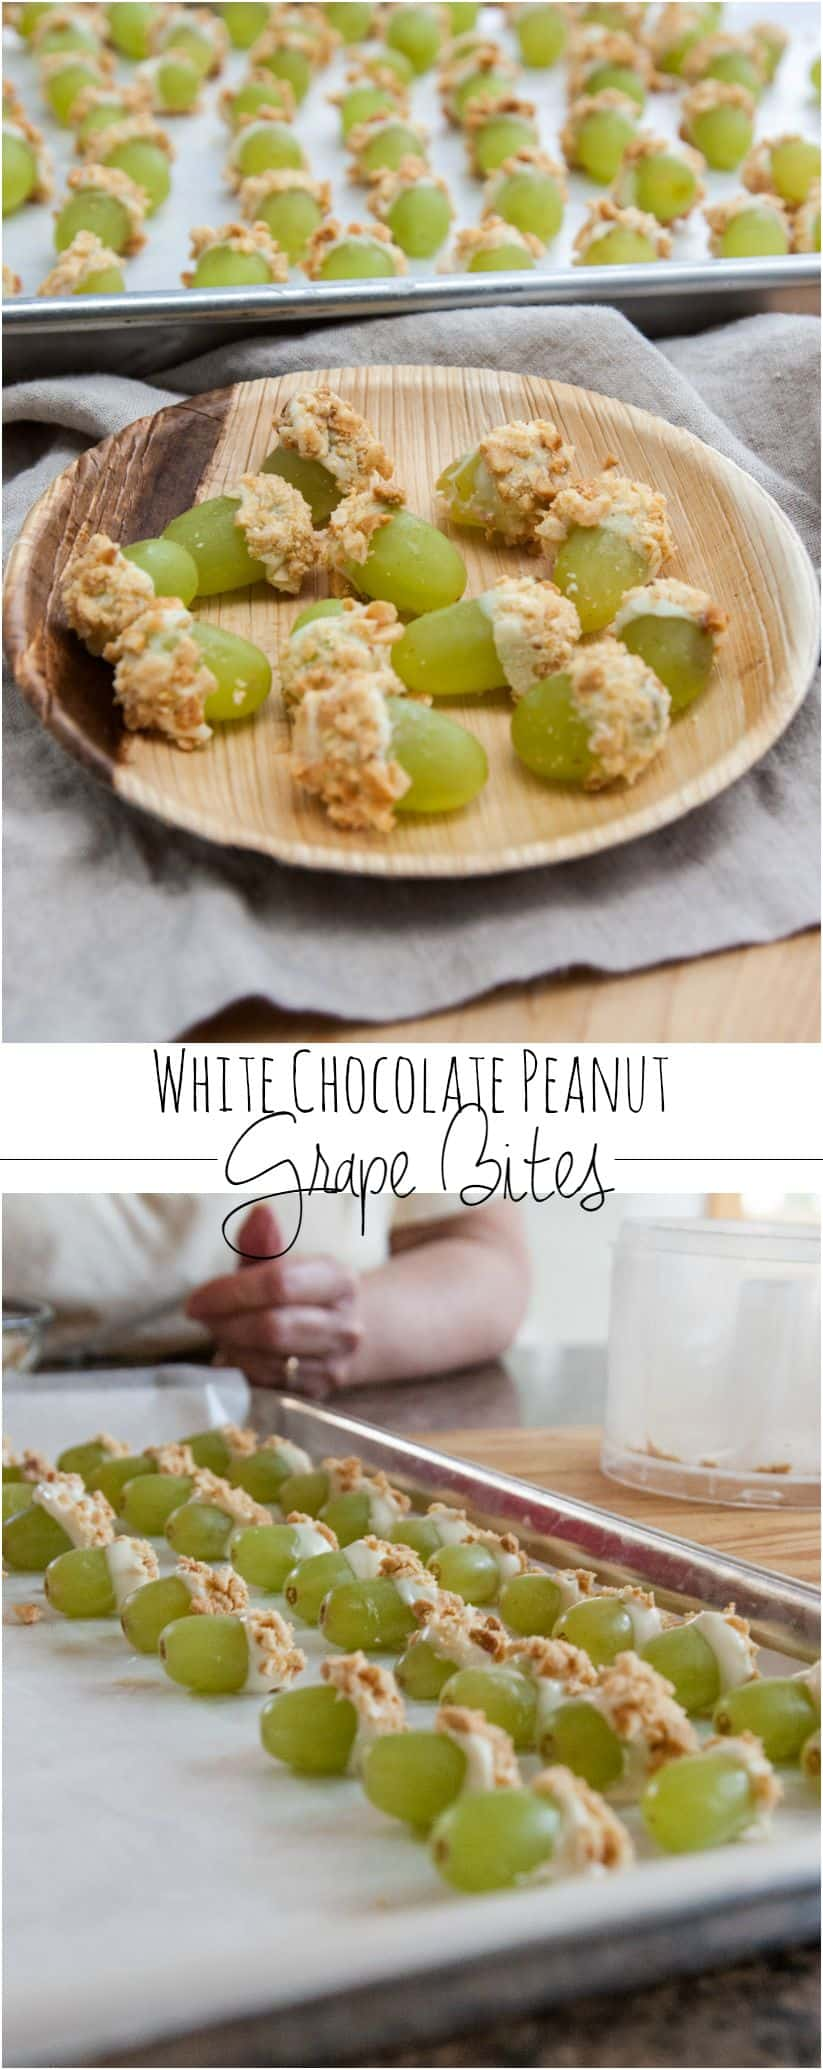 White chocolate peanut covered grape bites from @sweetphi